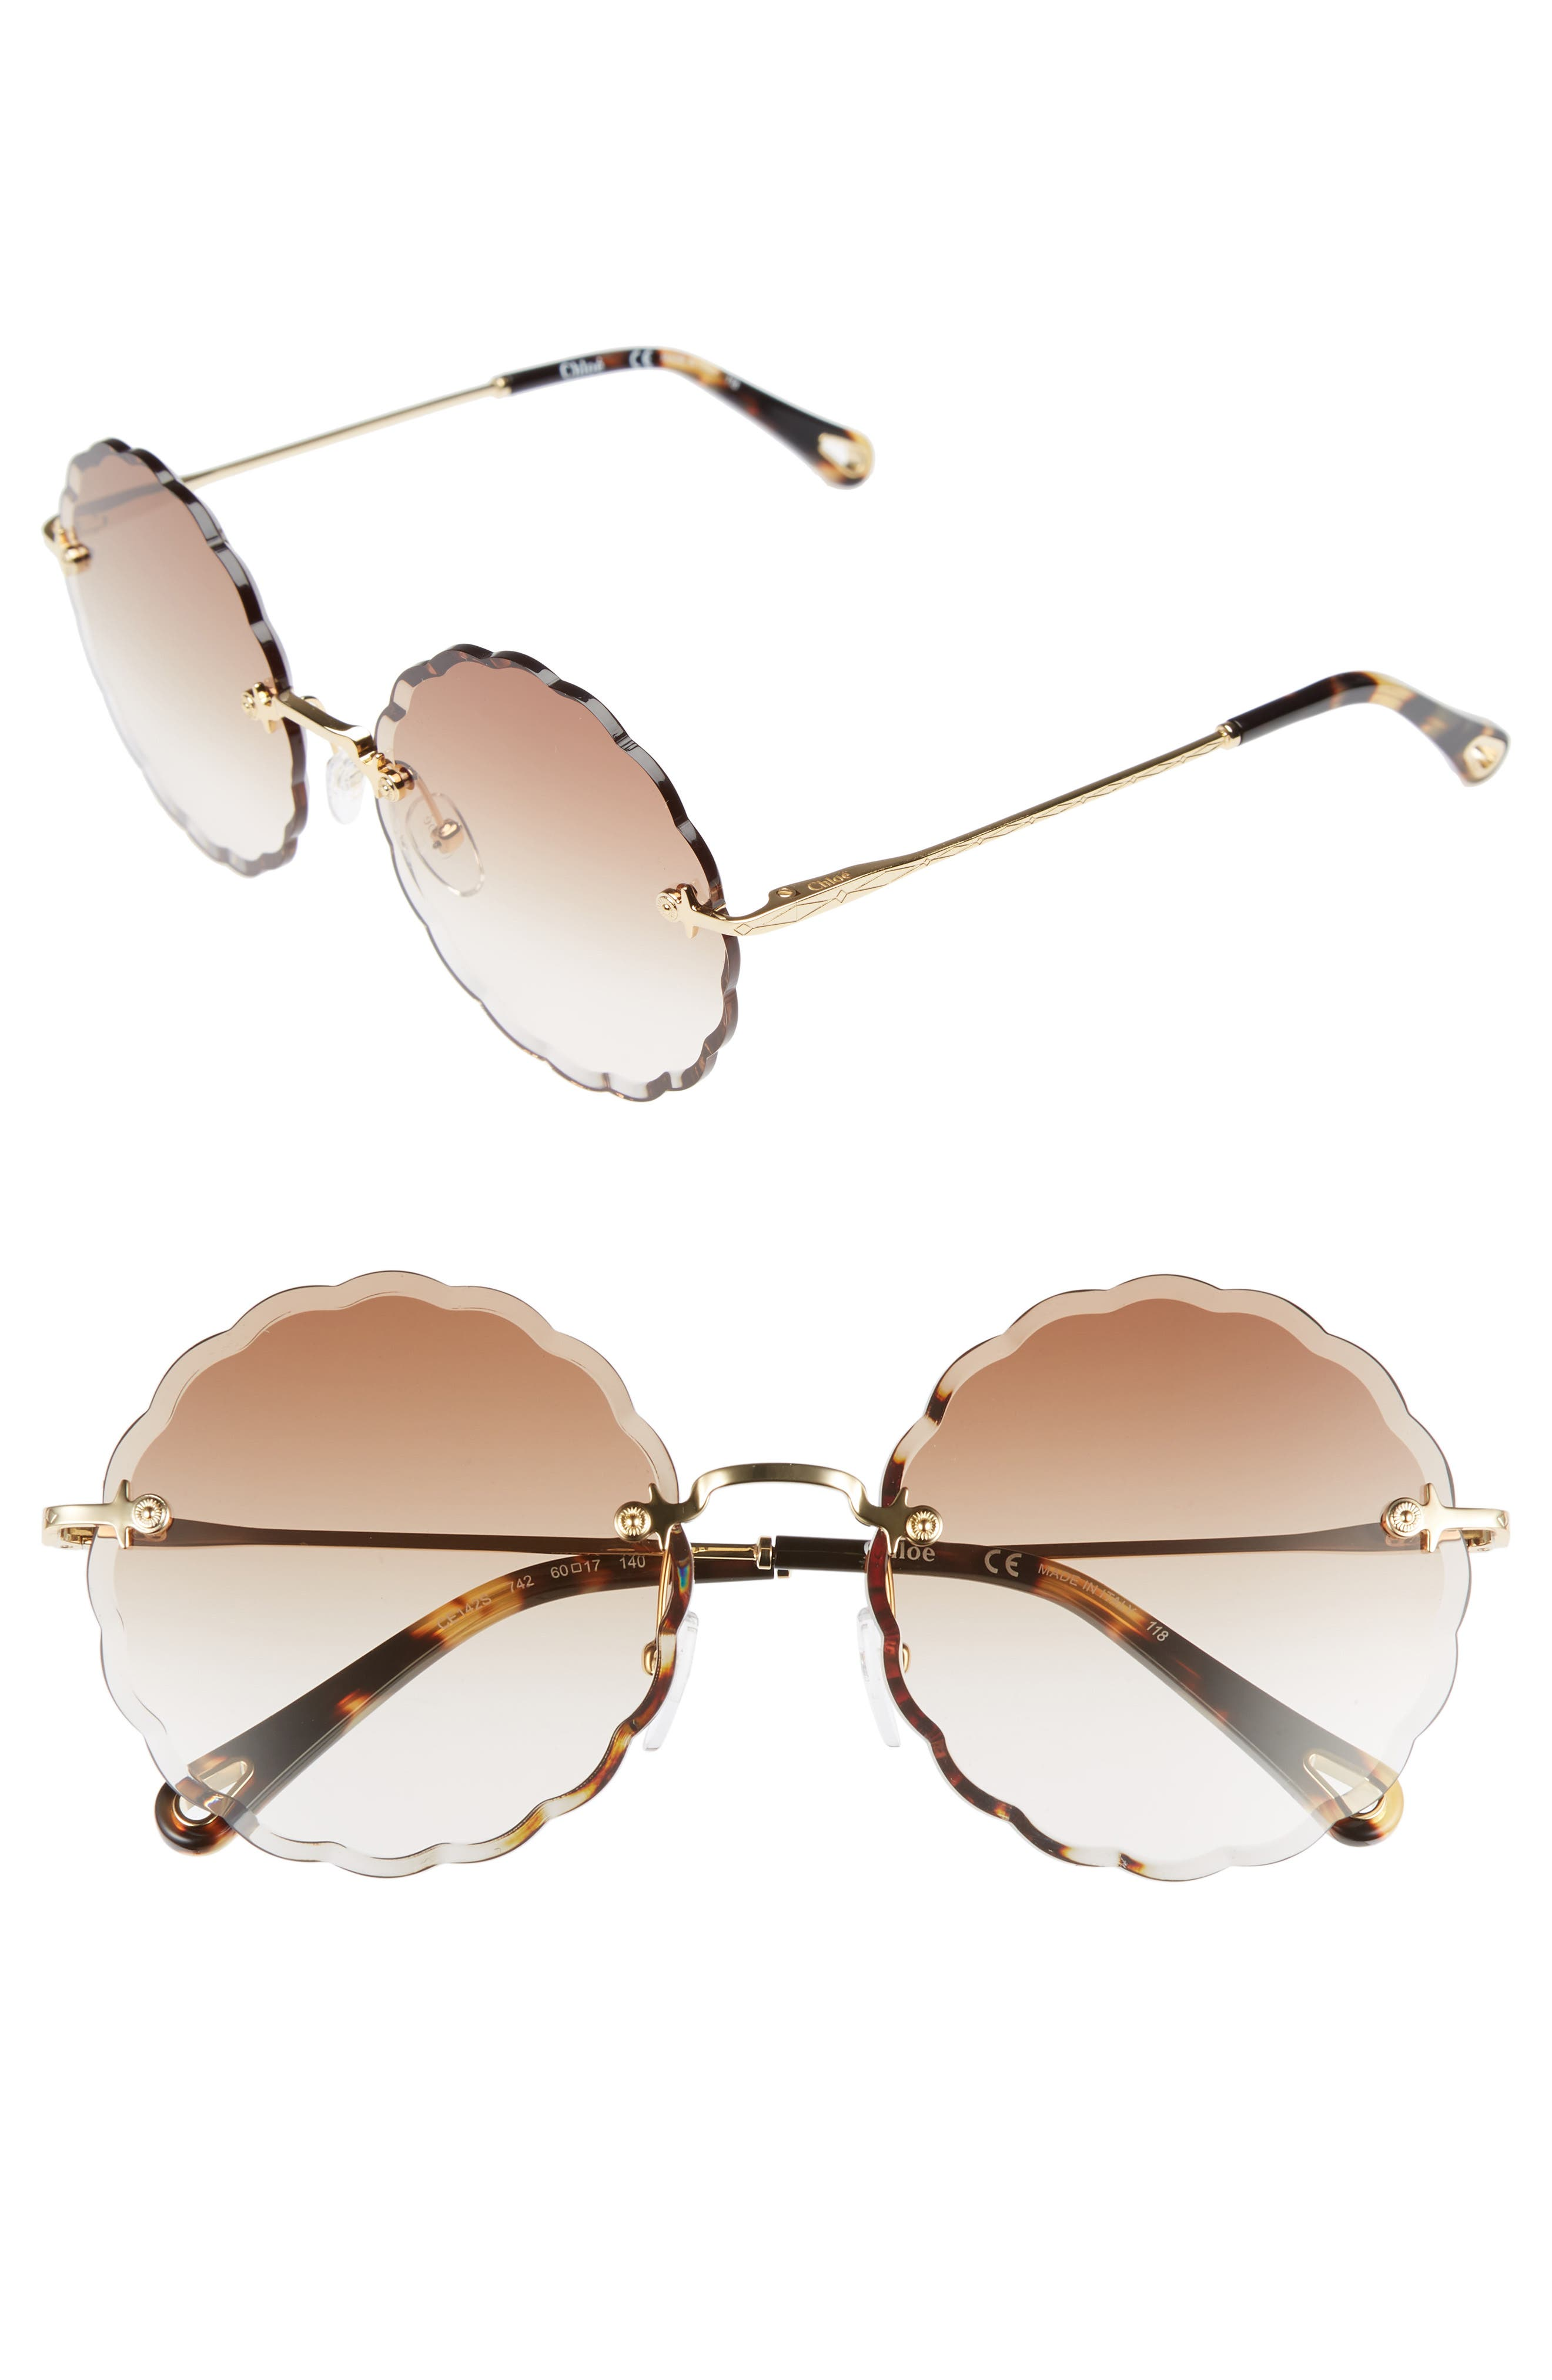 Chloe Rosie 60Mm Scalloped Rimless Sunglasses - Gold/ Gradient Brown